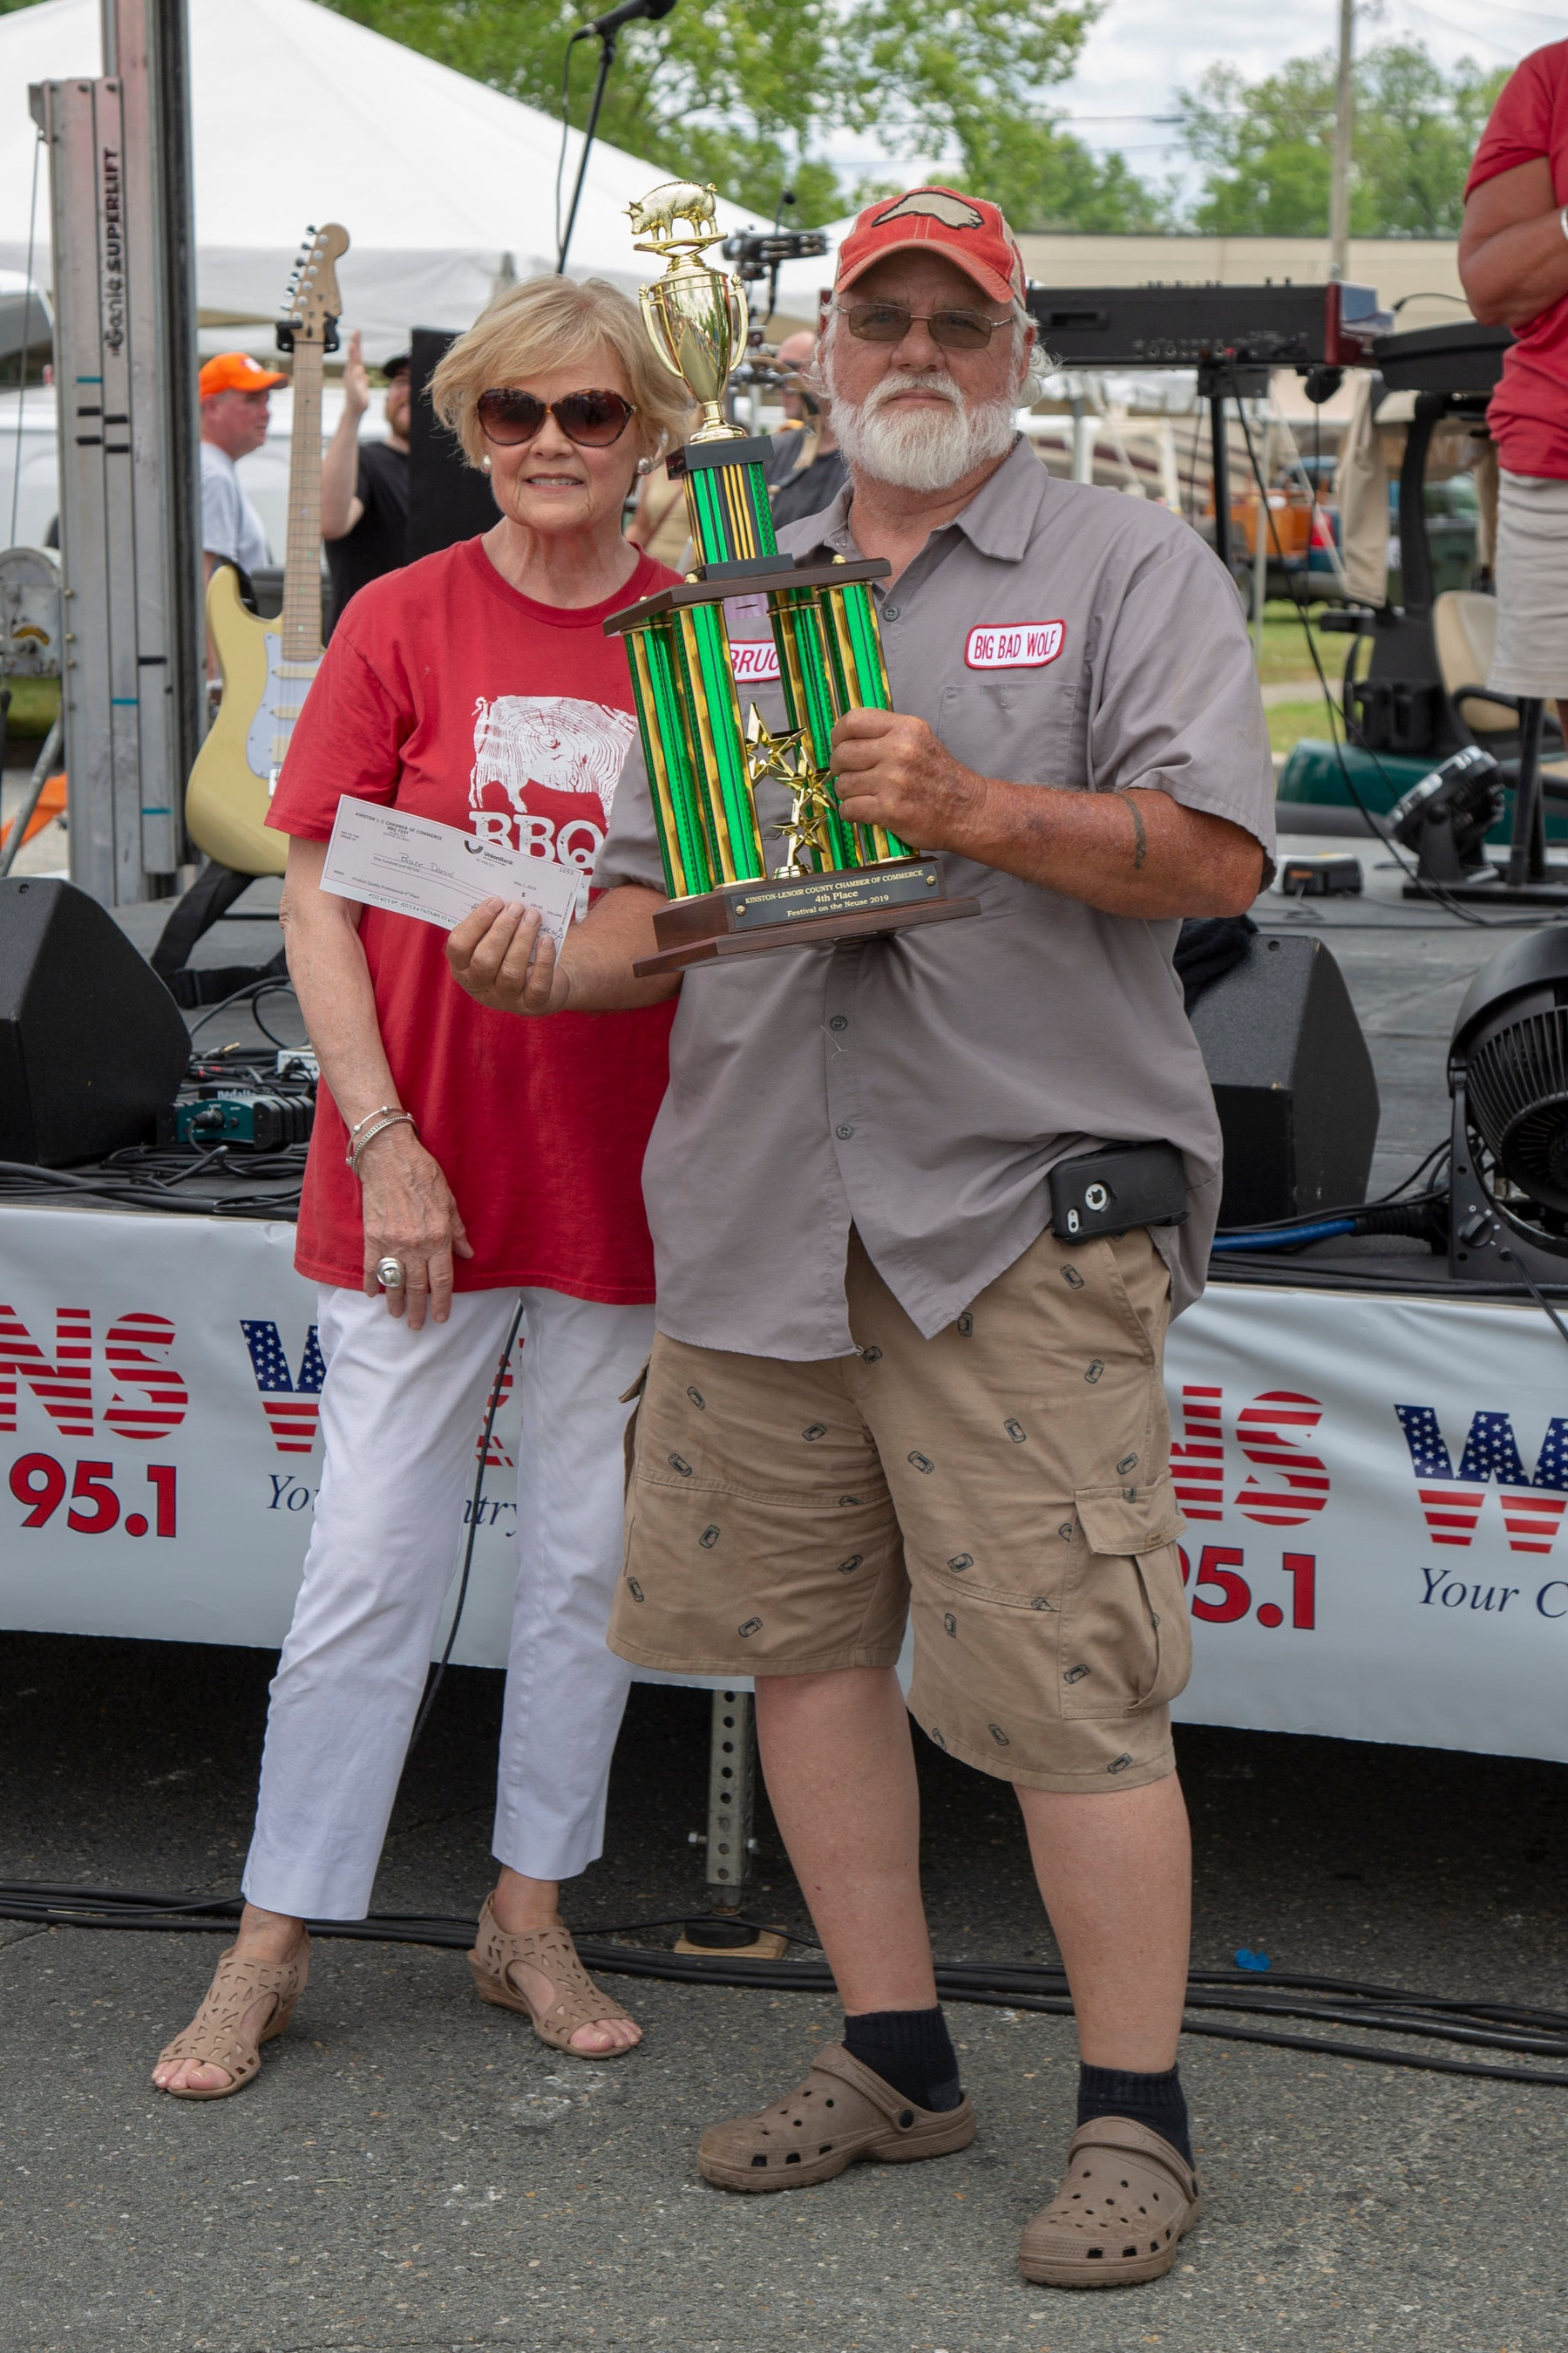 4th Place Team: Bruce Daniel, Big Bad Wolf Sponsor: First Flight Credit Union $100 and Trophy